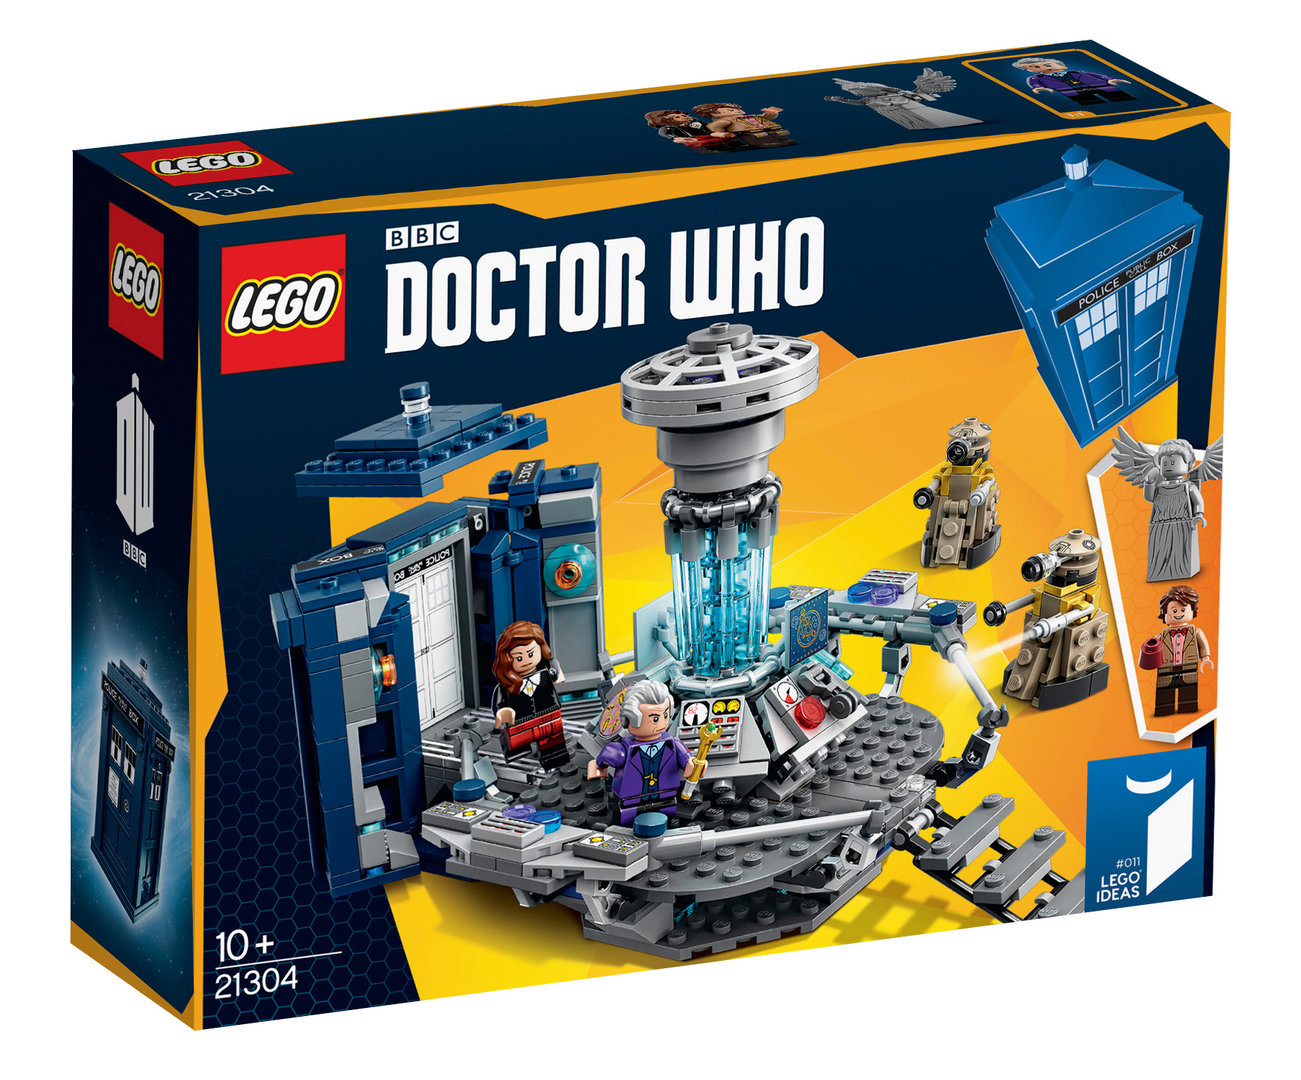 Doctor Who als Lego-Modell